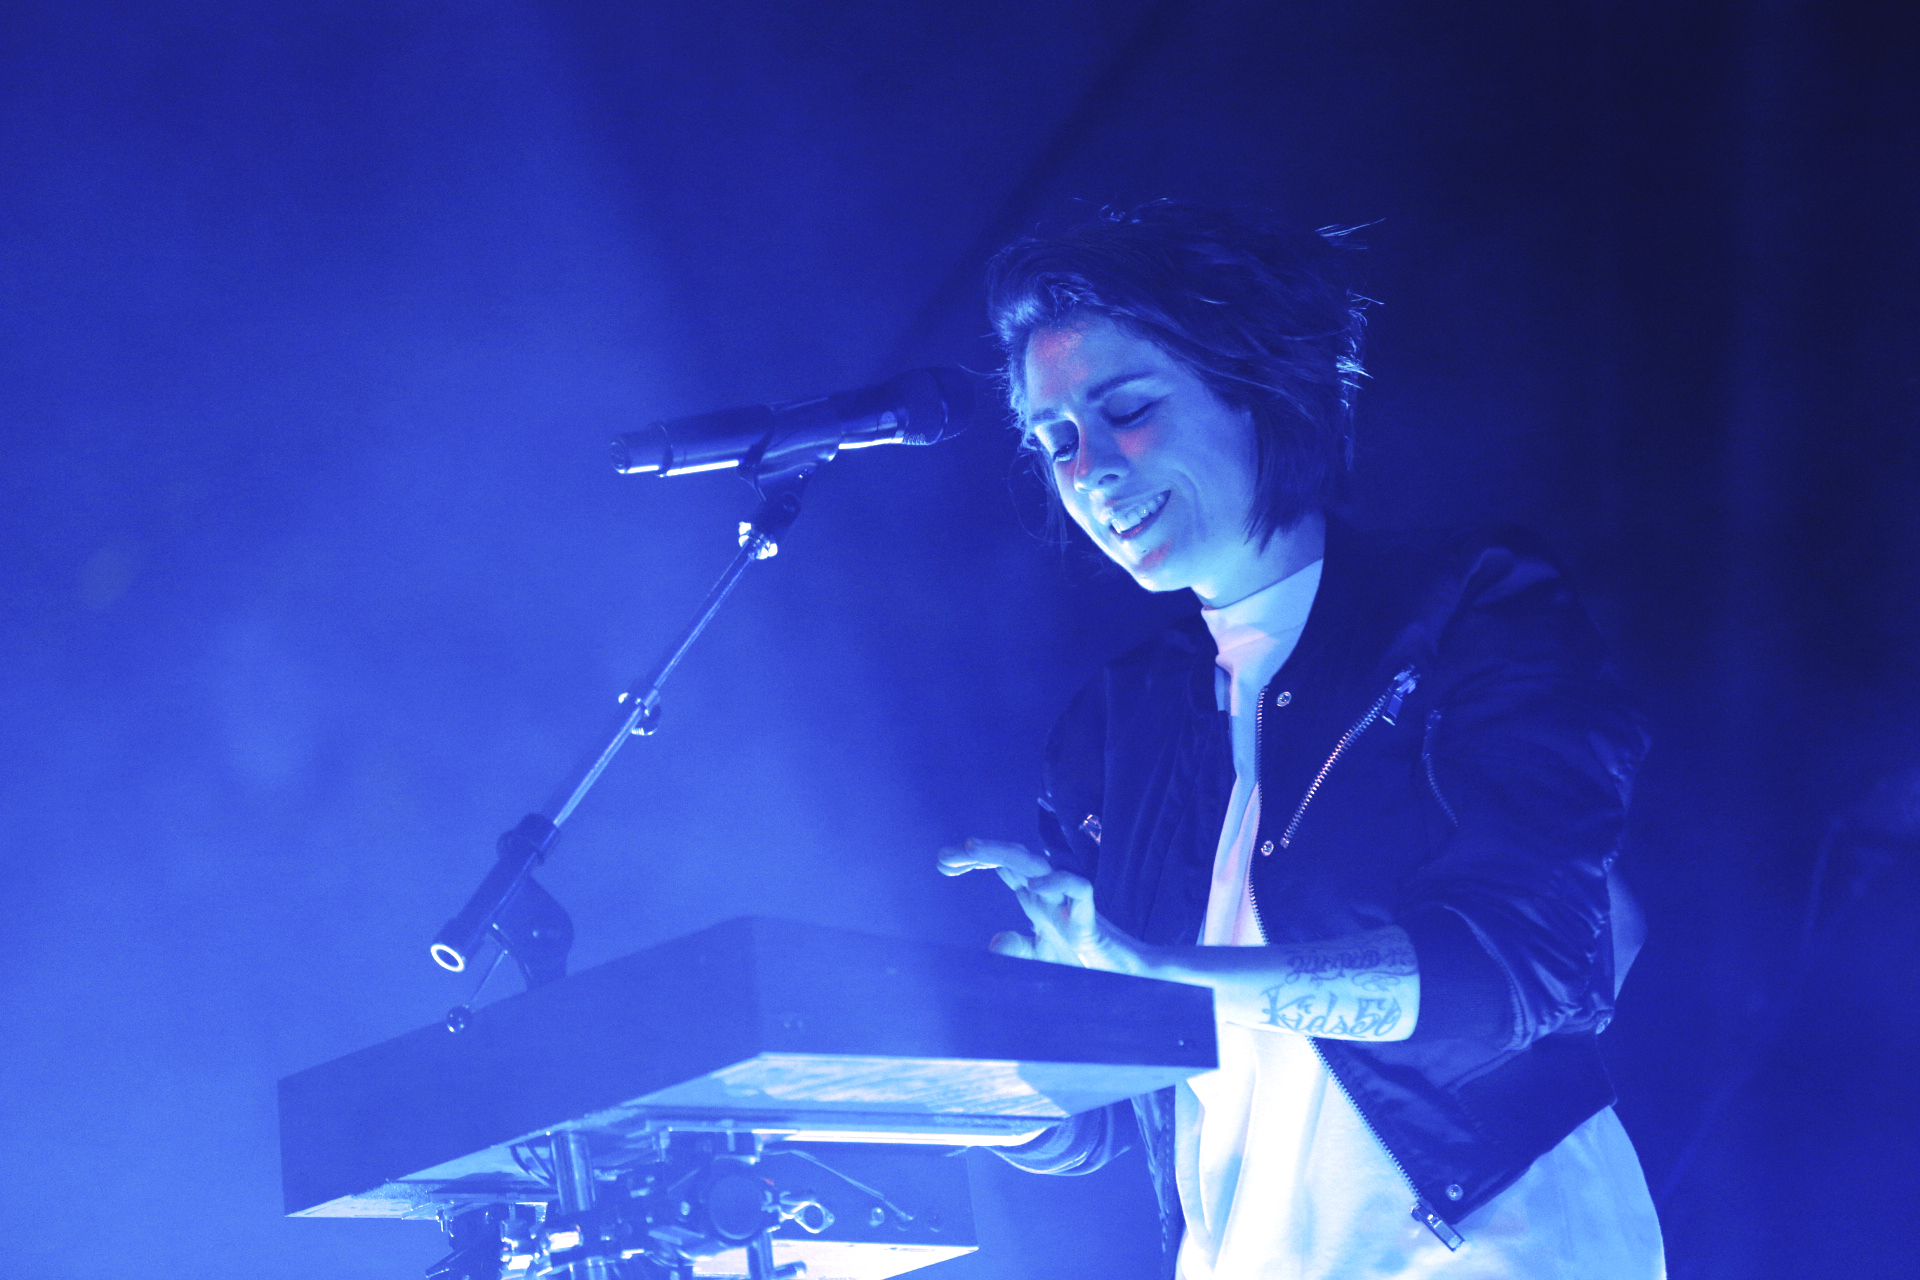 Tegan of Tegan and Sara providing keyboard and vocals at In the Venue. Photo: @Lmsorenson